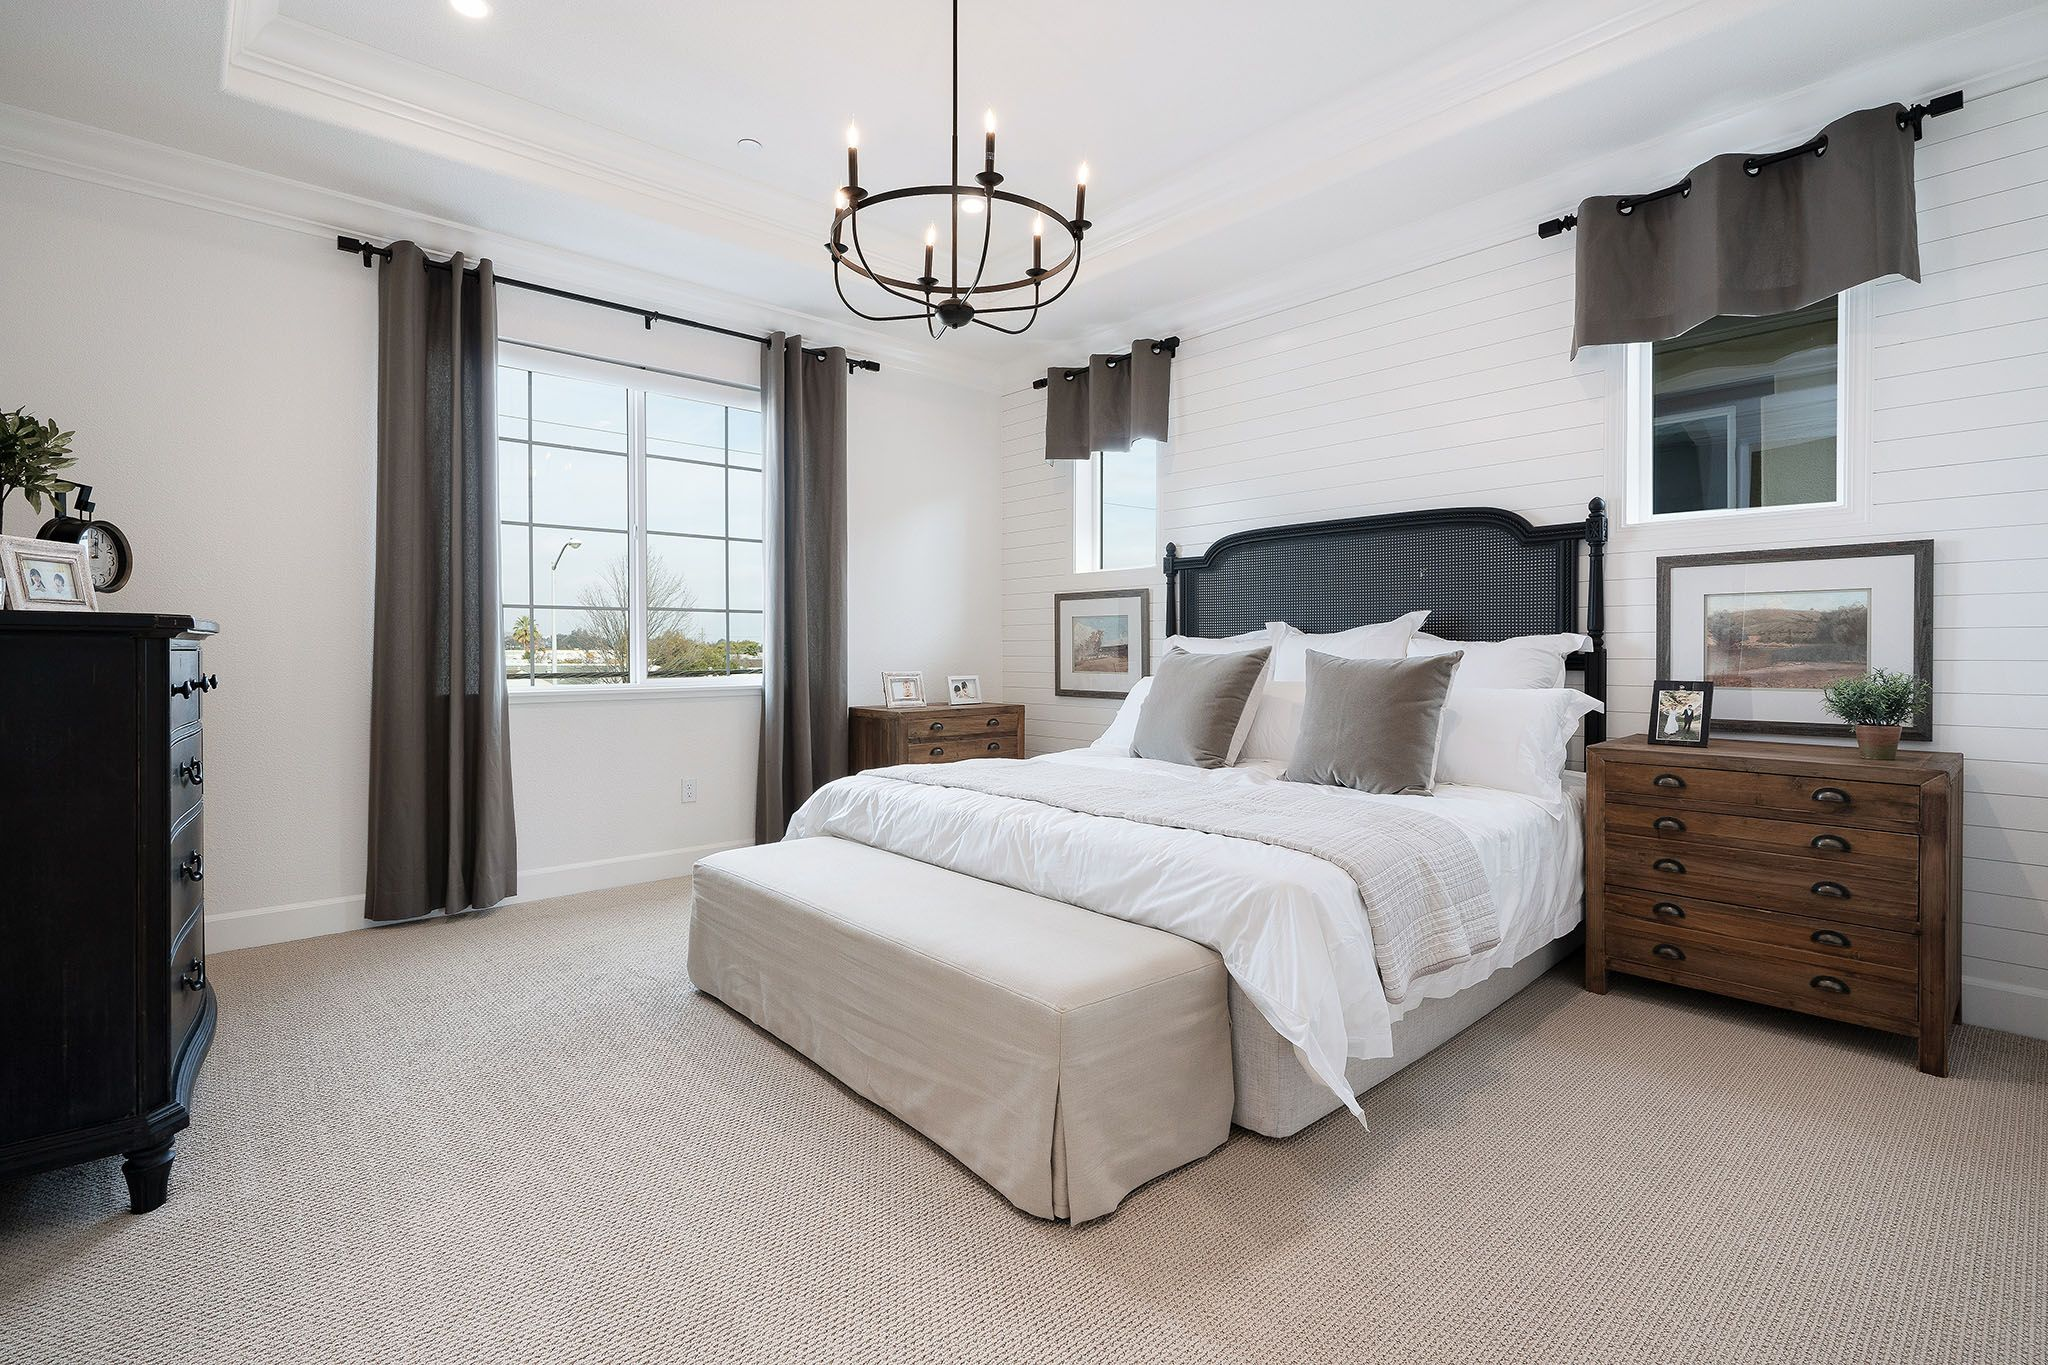 Bedroom featured in the Burnett By Discovery Homes in Vallejo-Napa, CA